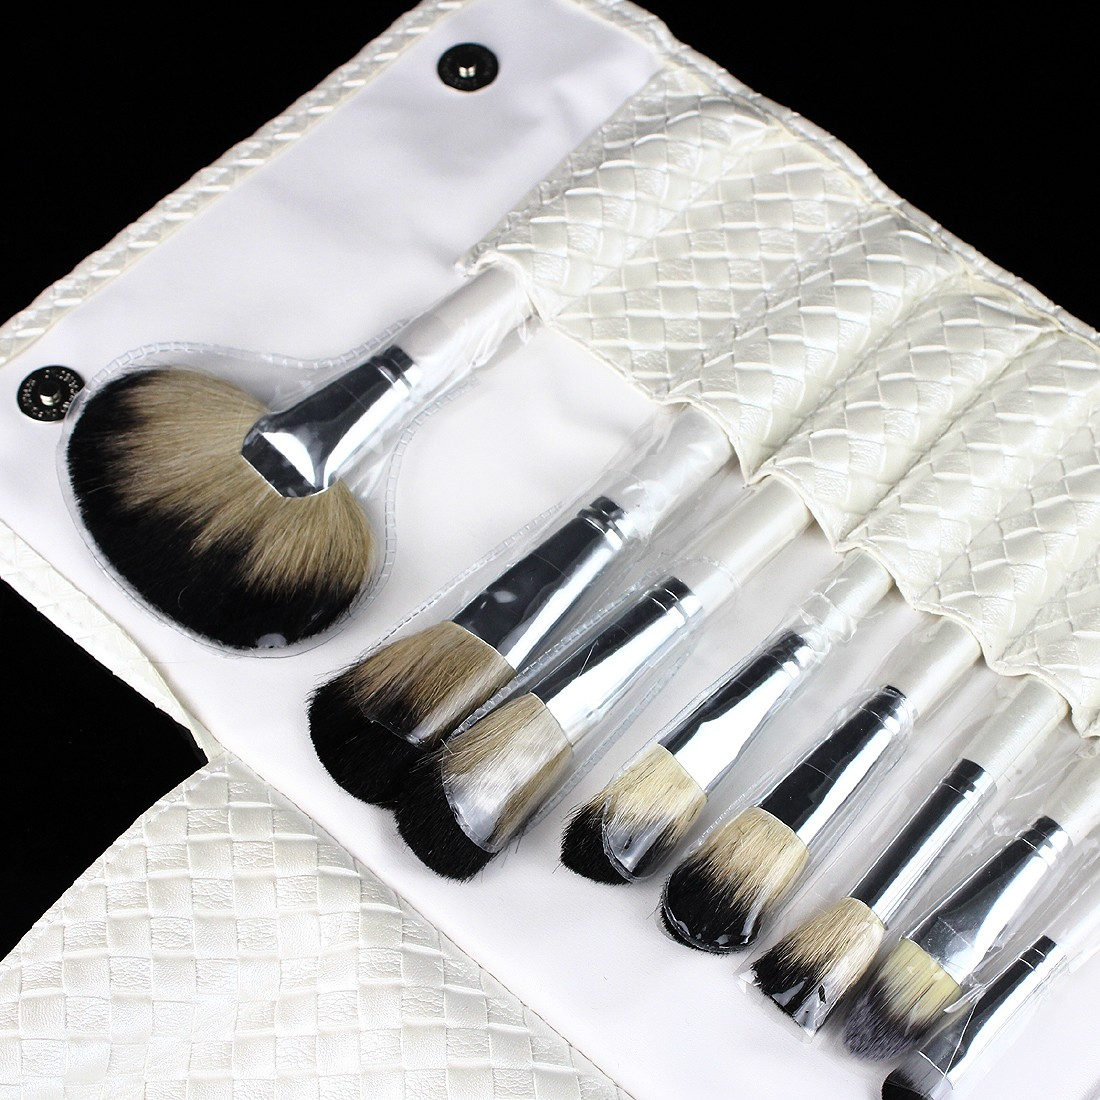 2016 hot sale Makeup Brushes Cosmetic Tool Kit Eyeshadow Powder Brush Set+ Case 36 Pcs/set best price mgehr1212 2 slot cutter external grooving tool holder turning tool no insert hot sale brand new